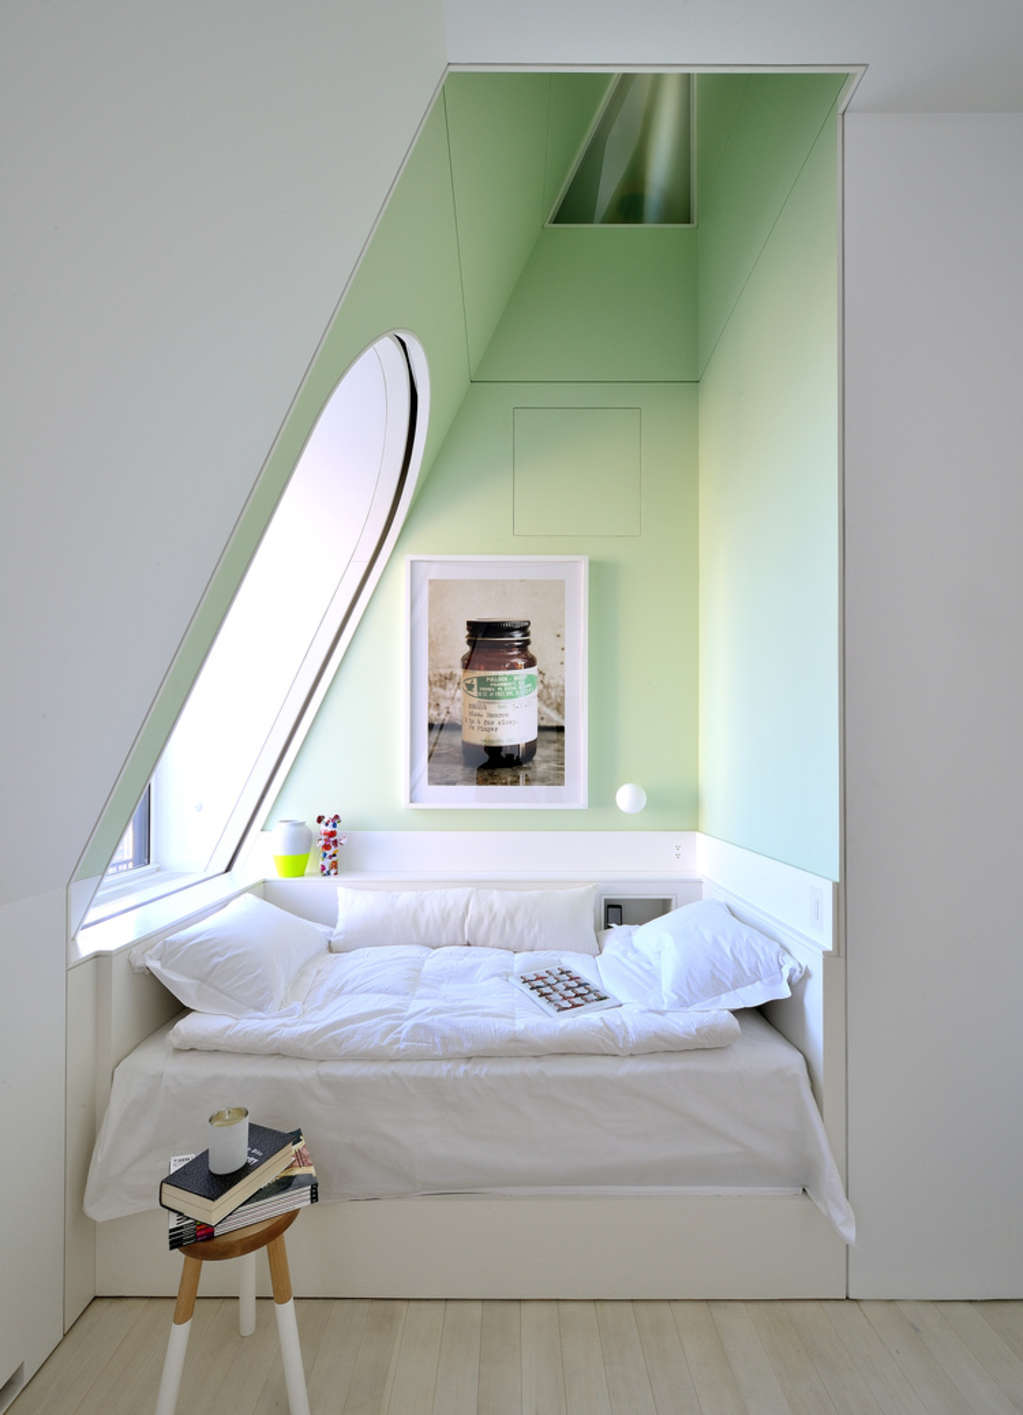 Bed Nooks: The Architectural Womb We Never Want to Leave